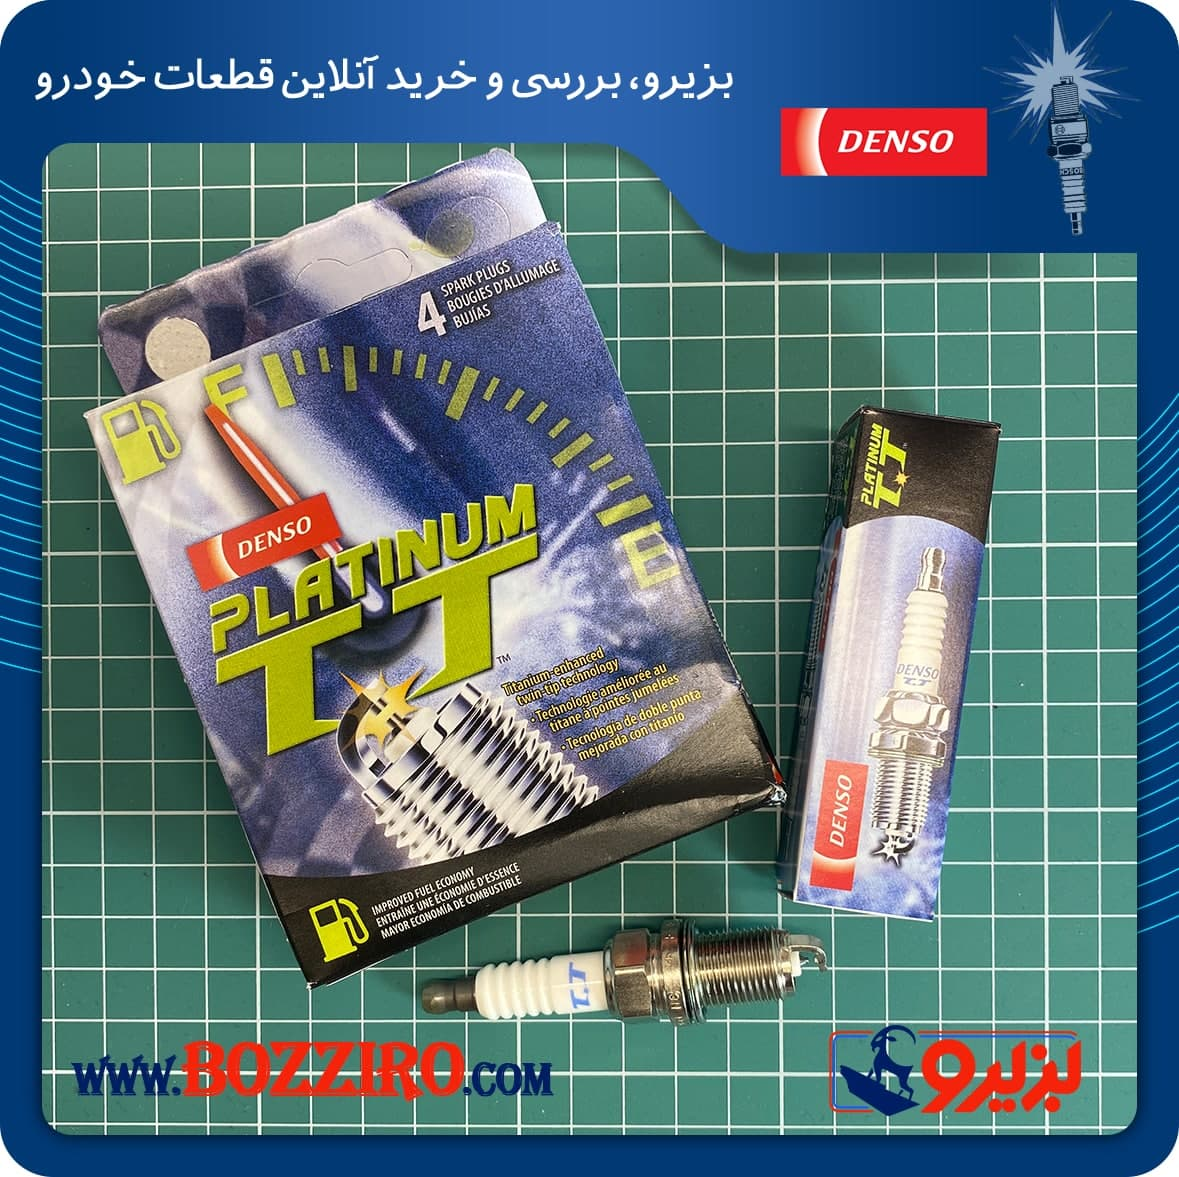 https://bozziro.com/wp-content/uploads/2021/05/شمع-کوتاه-دنزو-تی-تی.jpg